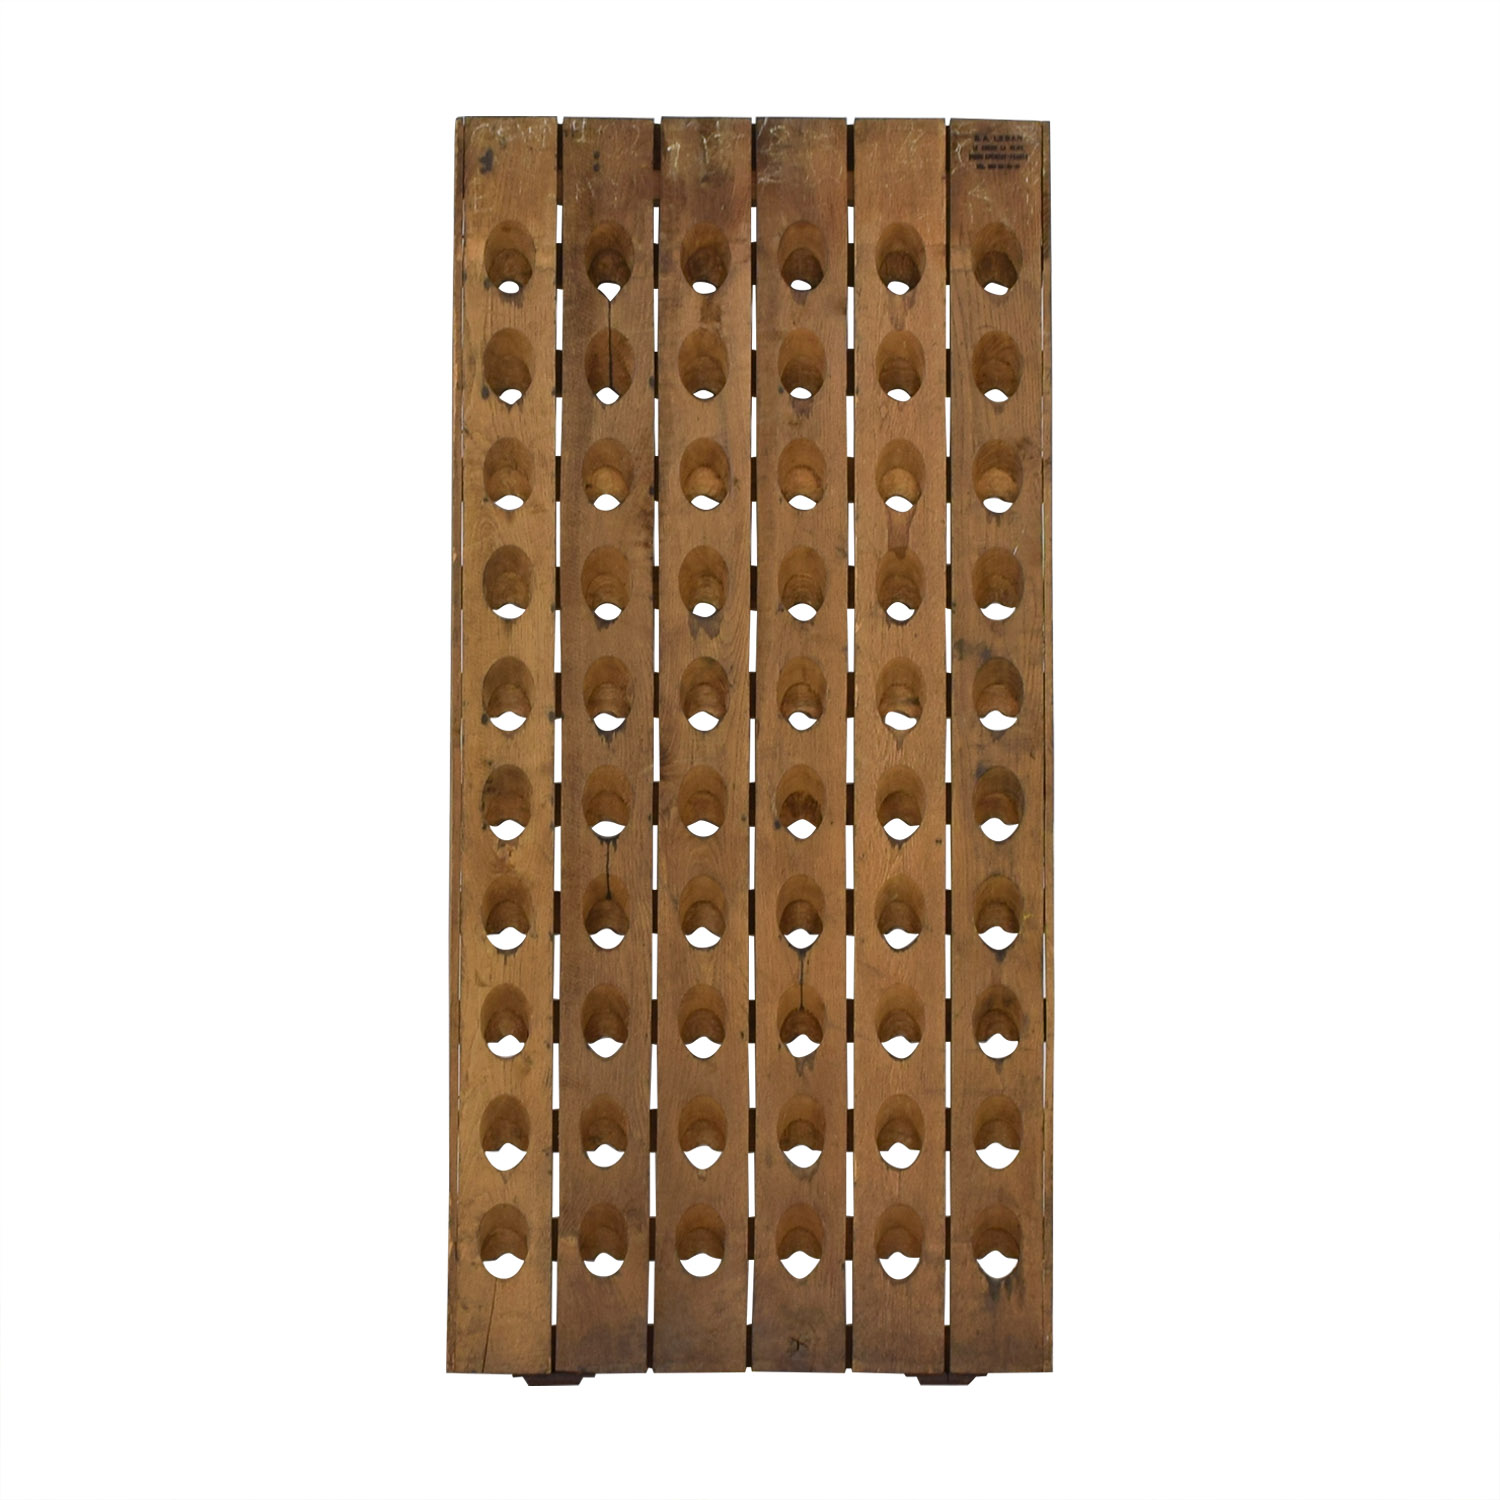 Sundance Decorative French Riddling Wine Rack Decorative Accents